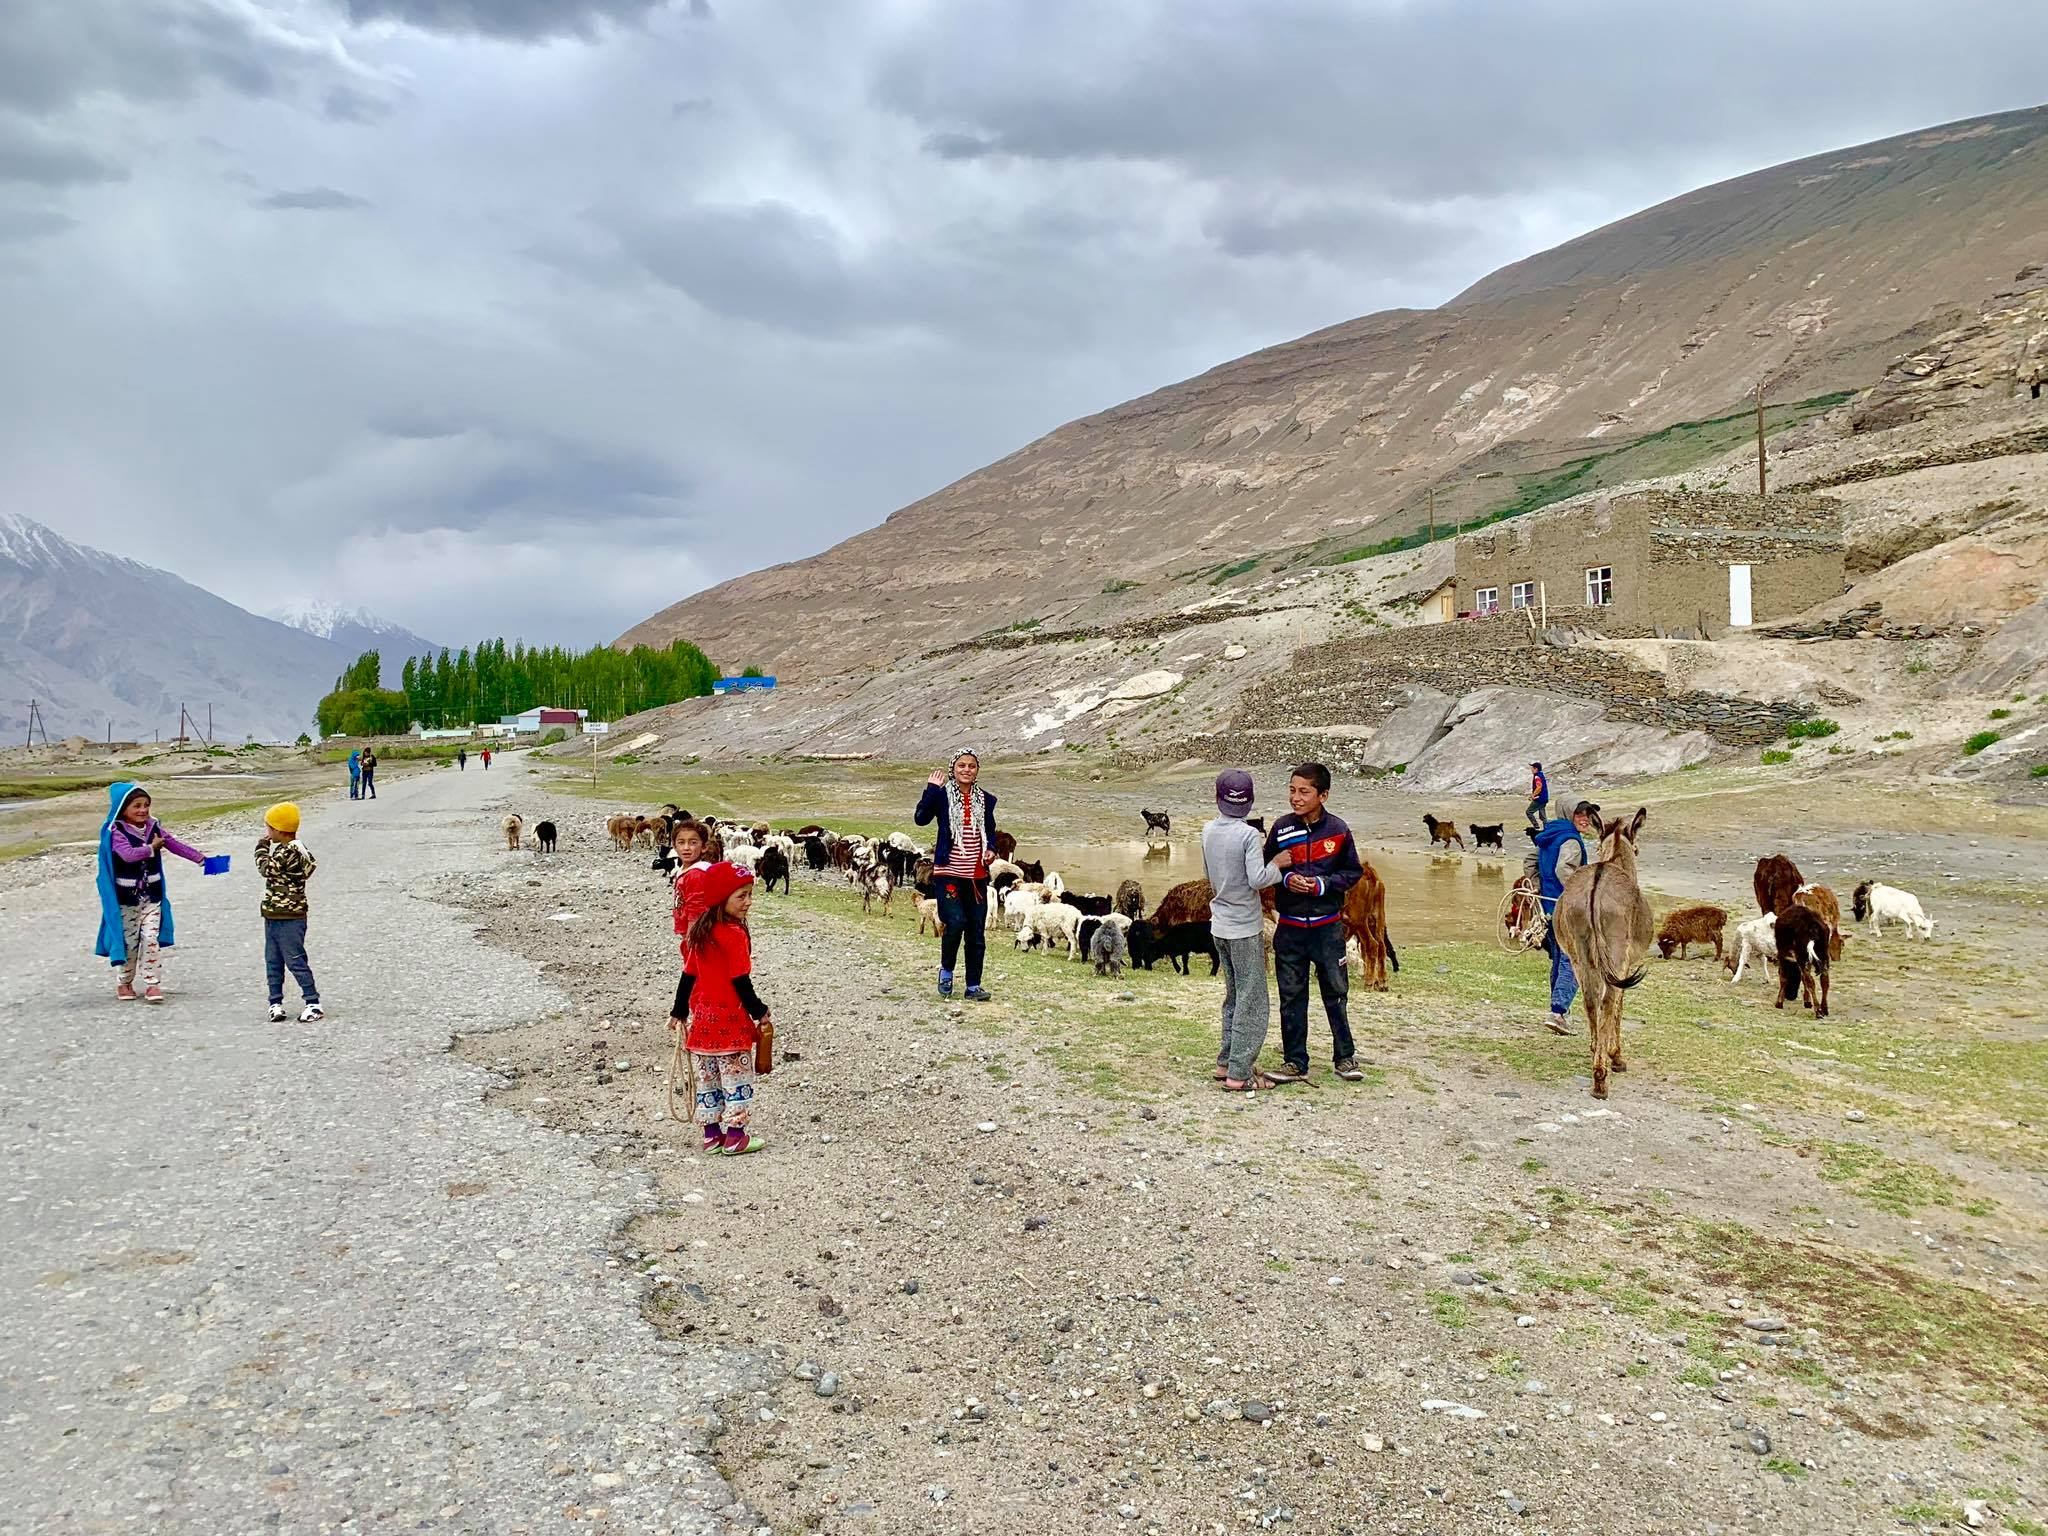 Kach Solo Travels in 2019 Driving from Ishkashim to Wakhan Valley8.jpg